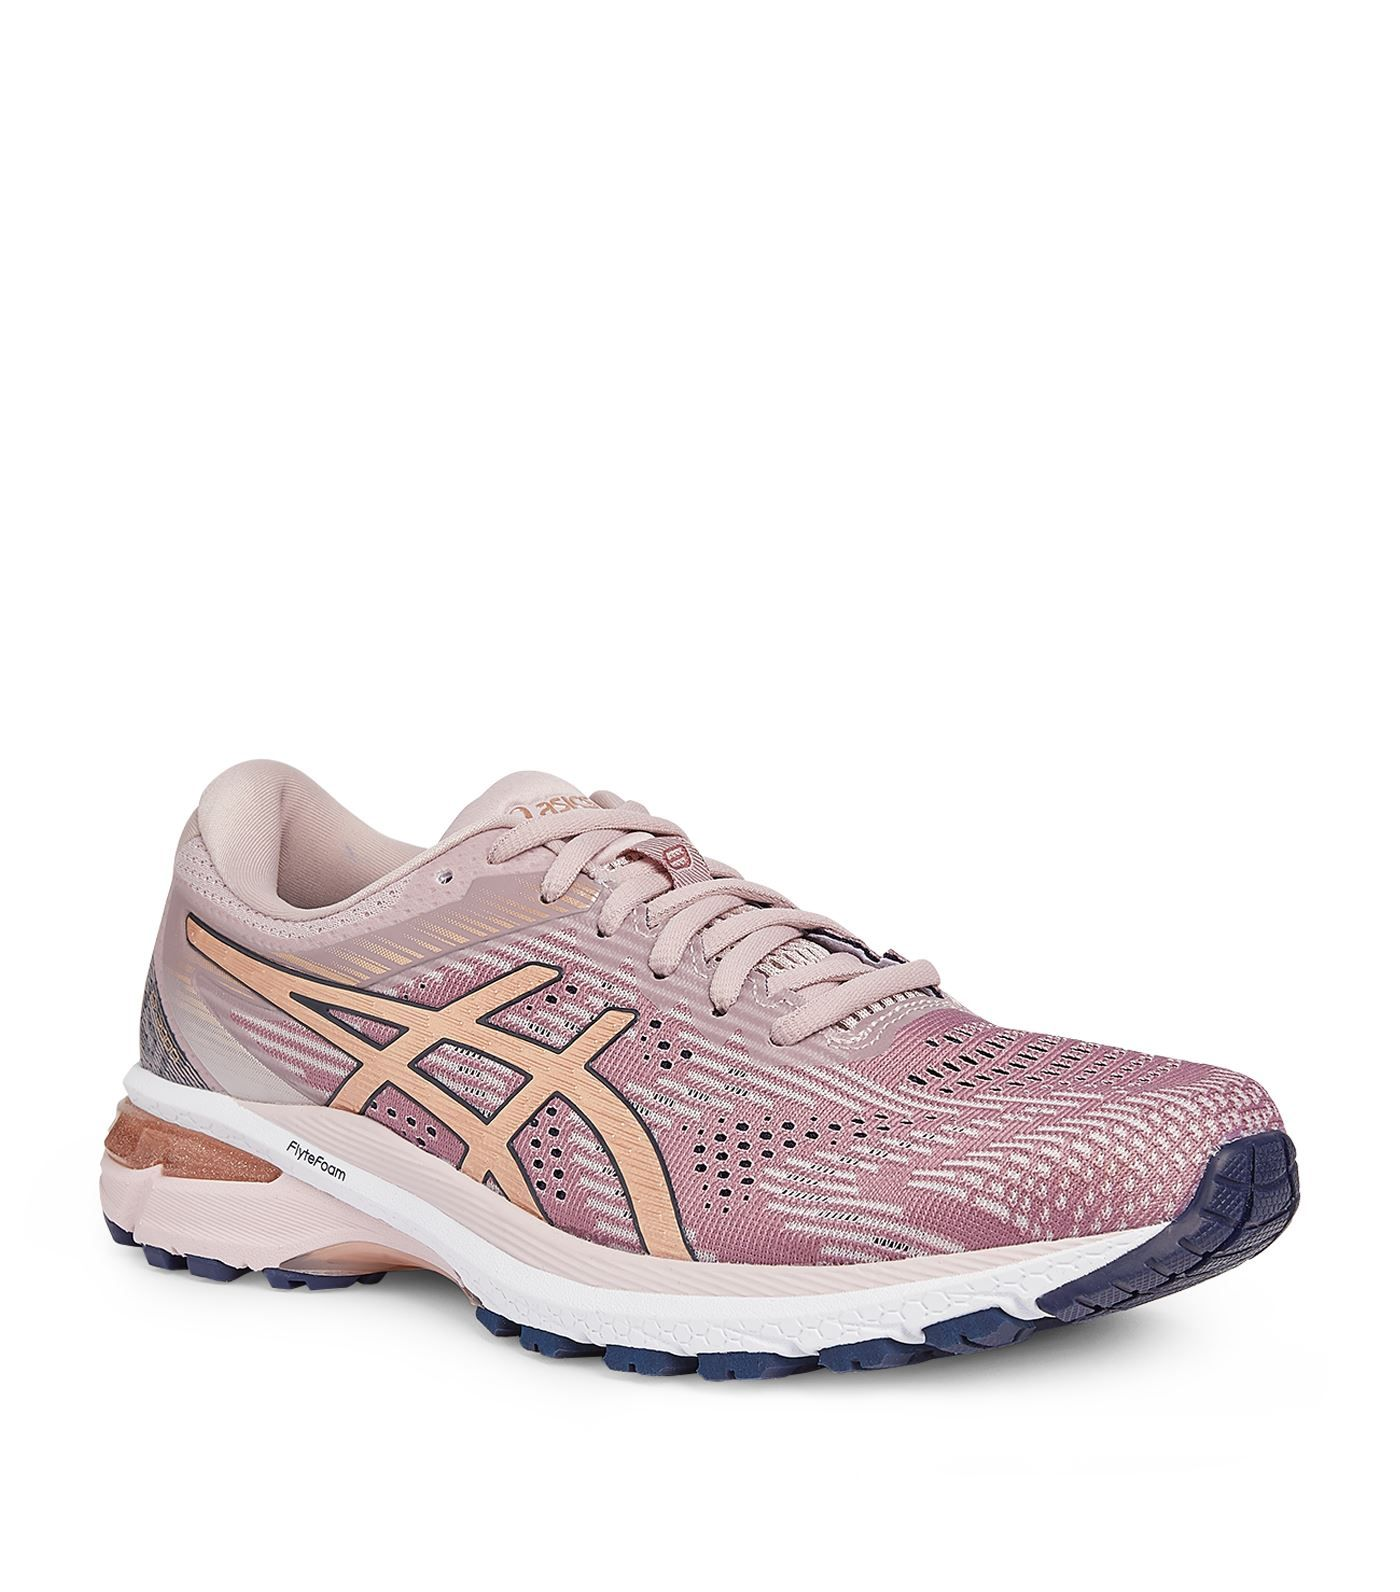 Asics Gt 2000 8 Trainers In 2020 Asics Asics Gt